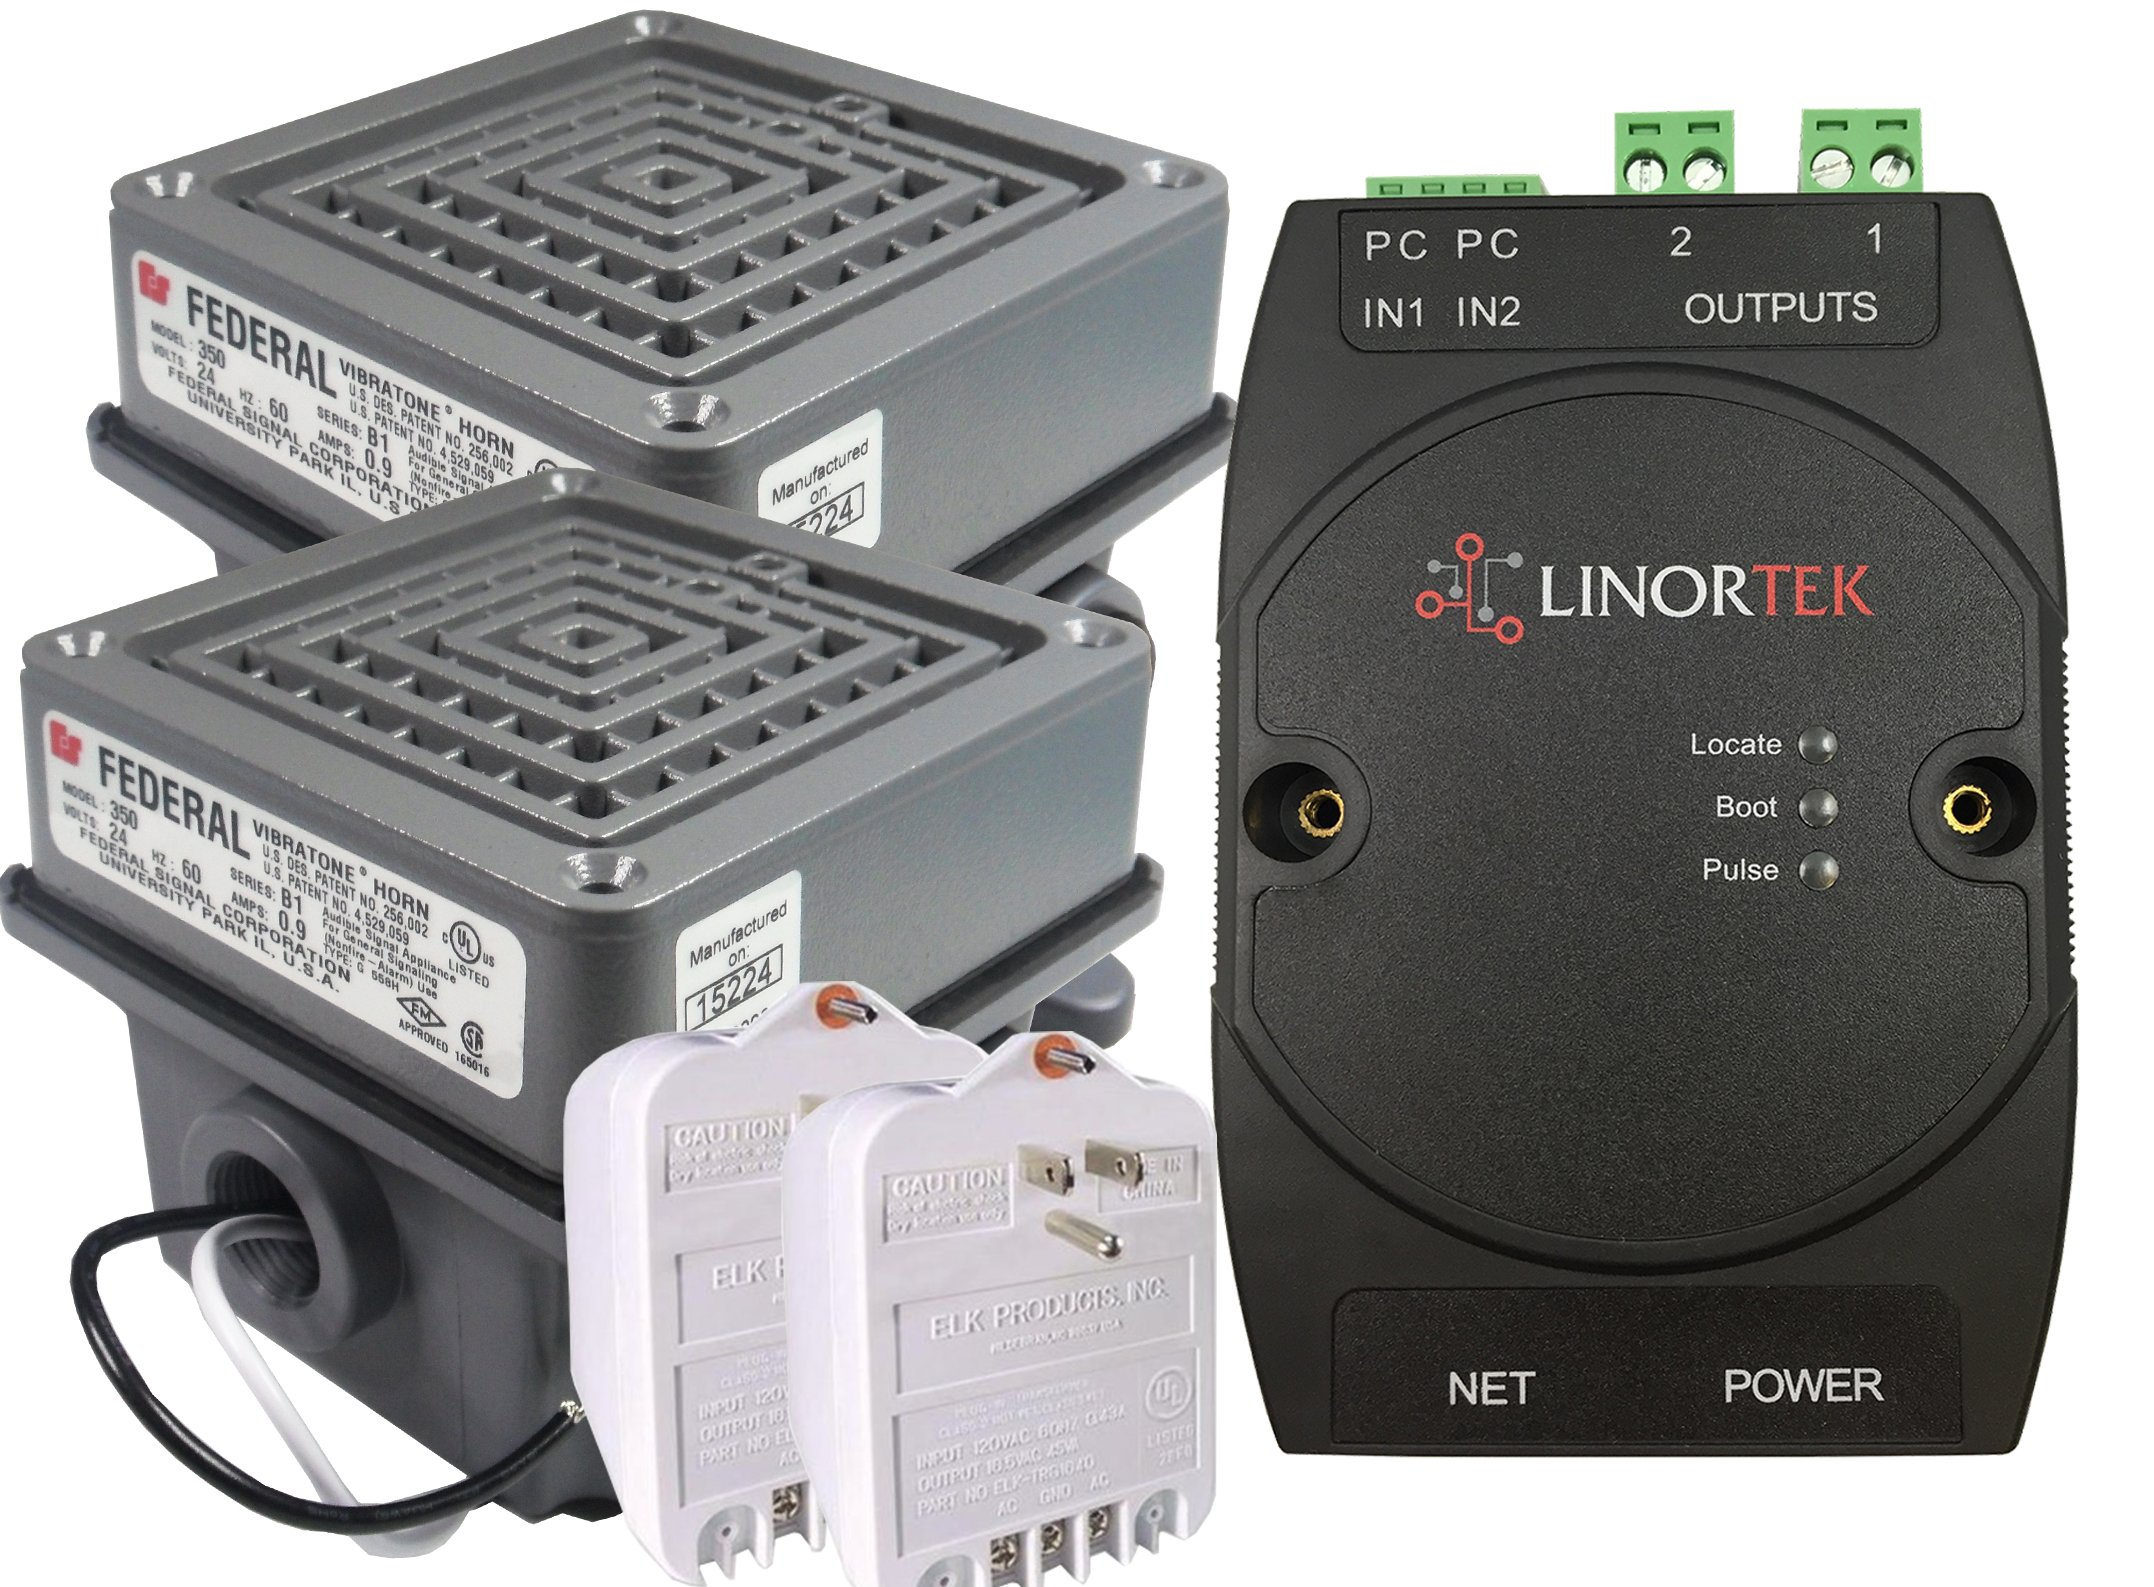 Netbell-2-2Buz TCP/IP Web-based Buzzer Kit with Two Federal Signal 350-024-30 Vibratone Horns for Factory / Warehouse Automatic Break Time Buzzer System with Up to 500 Schedules POE Enabled by Linortek (Image #1)